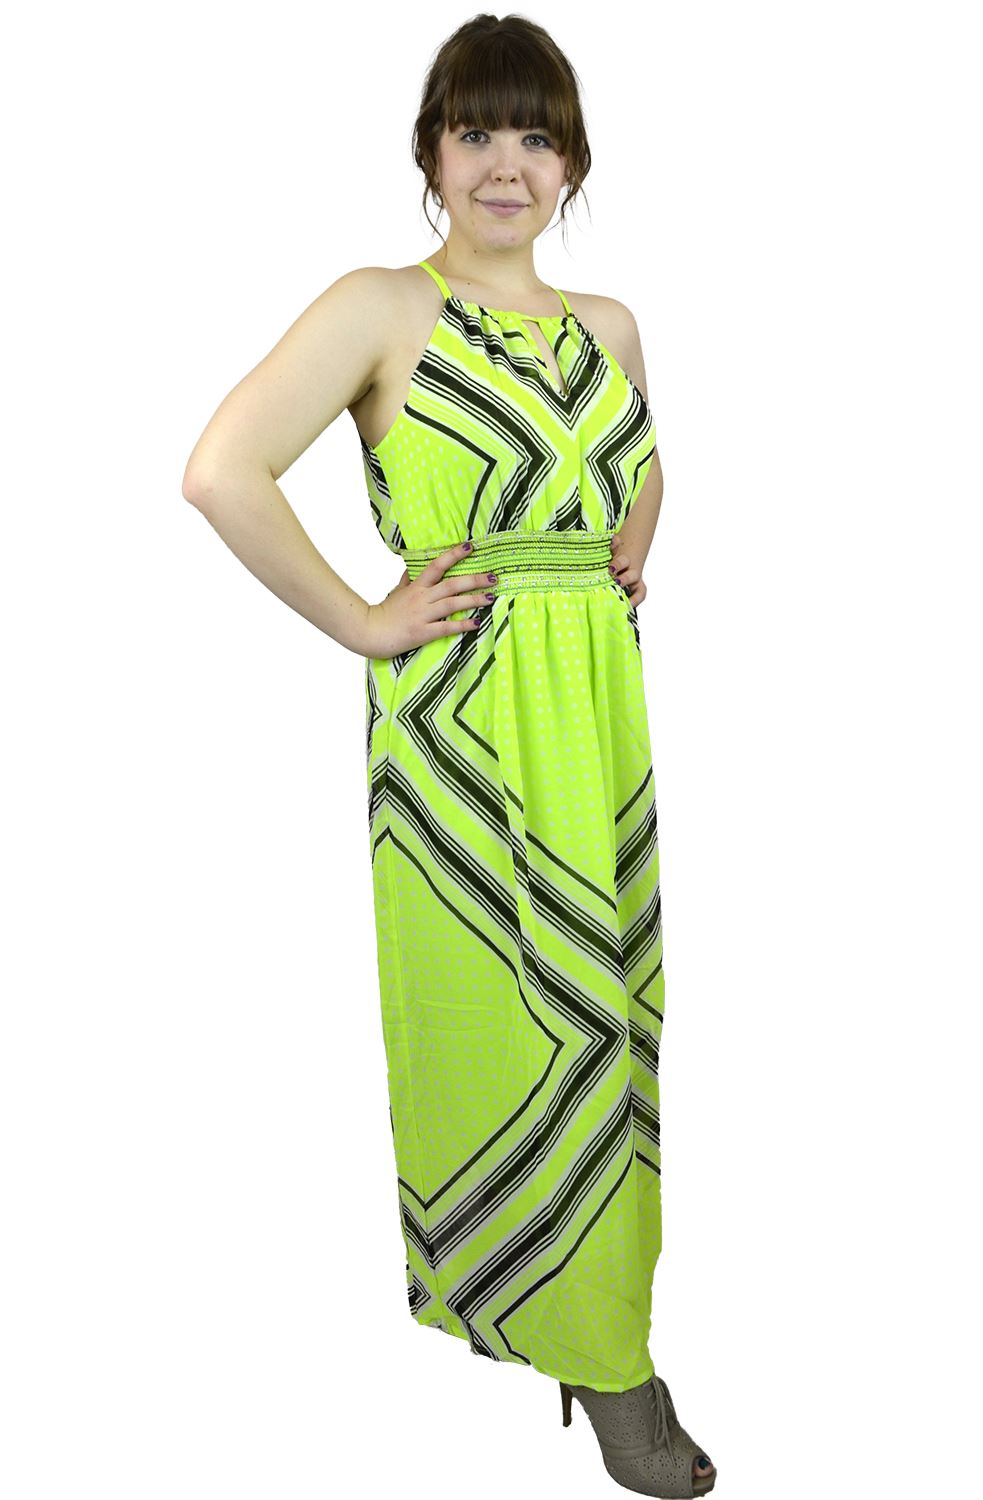 Belle Donne Women's Plus Size Print Maxi Dresses Cute Spring Fashion Sundress -Lime/XX-Large